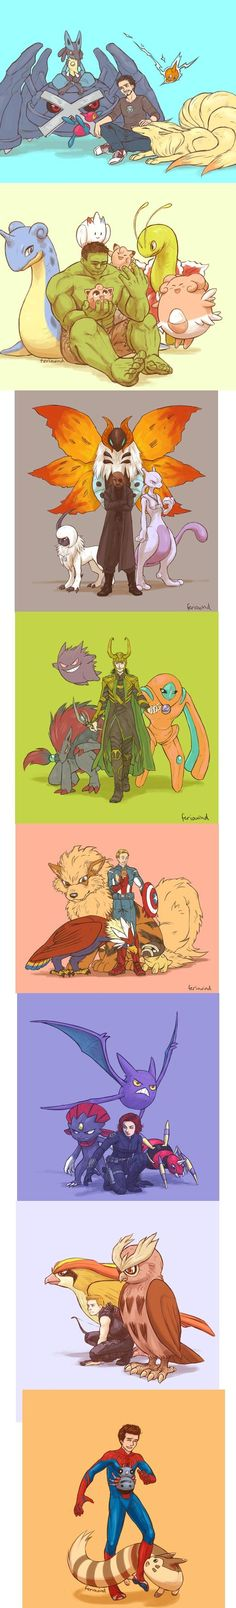 Avengers Pokemon crossover - One of the coolest mashups I've seen! Wonder why Stark has a Lucario...